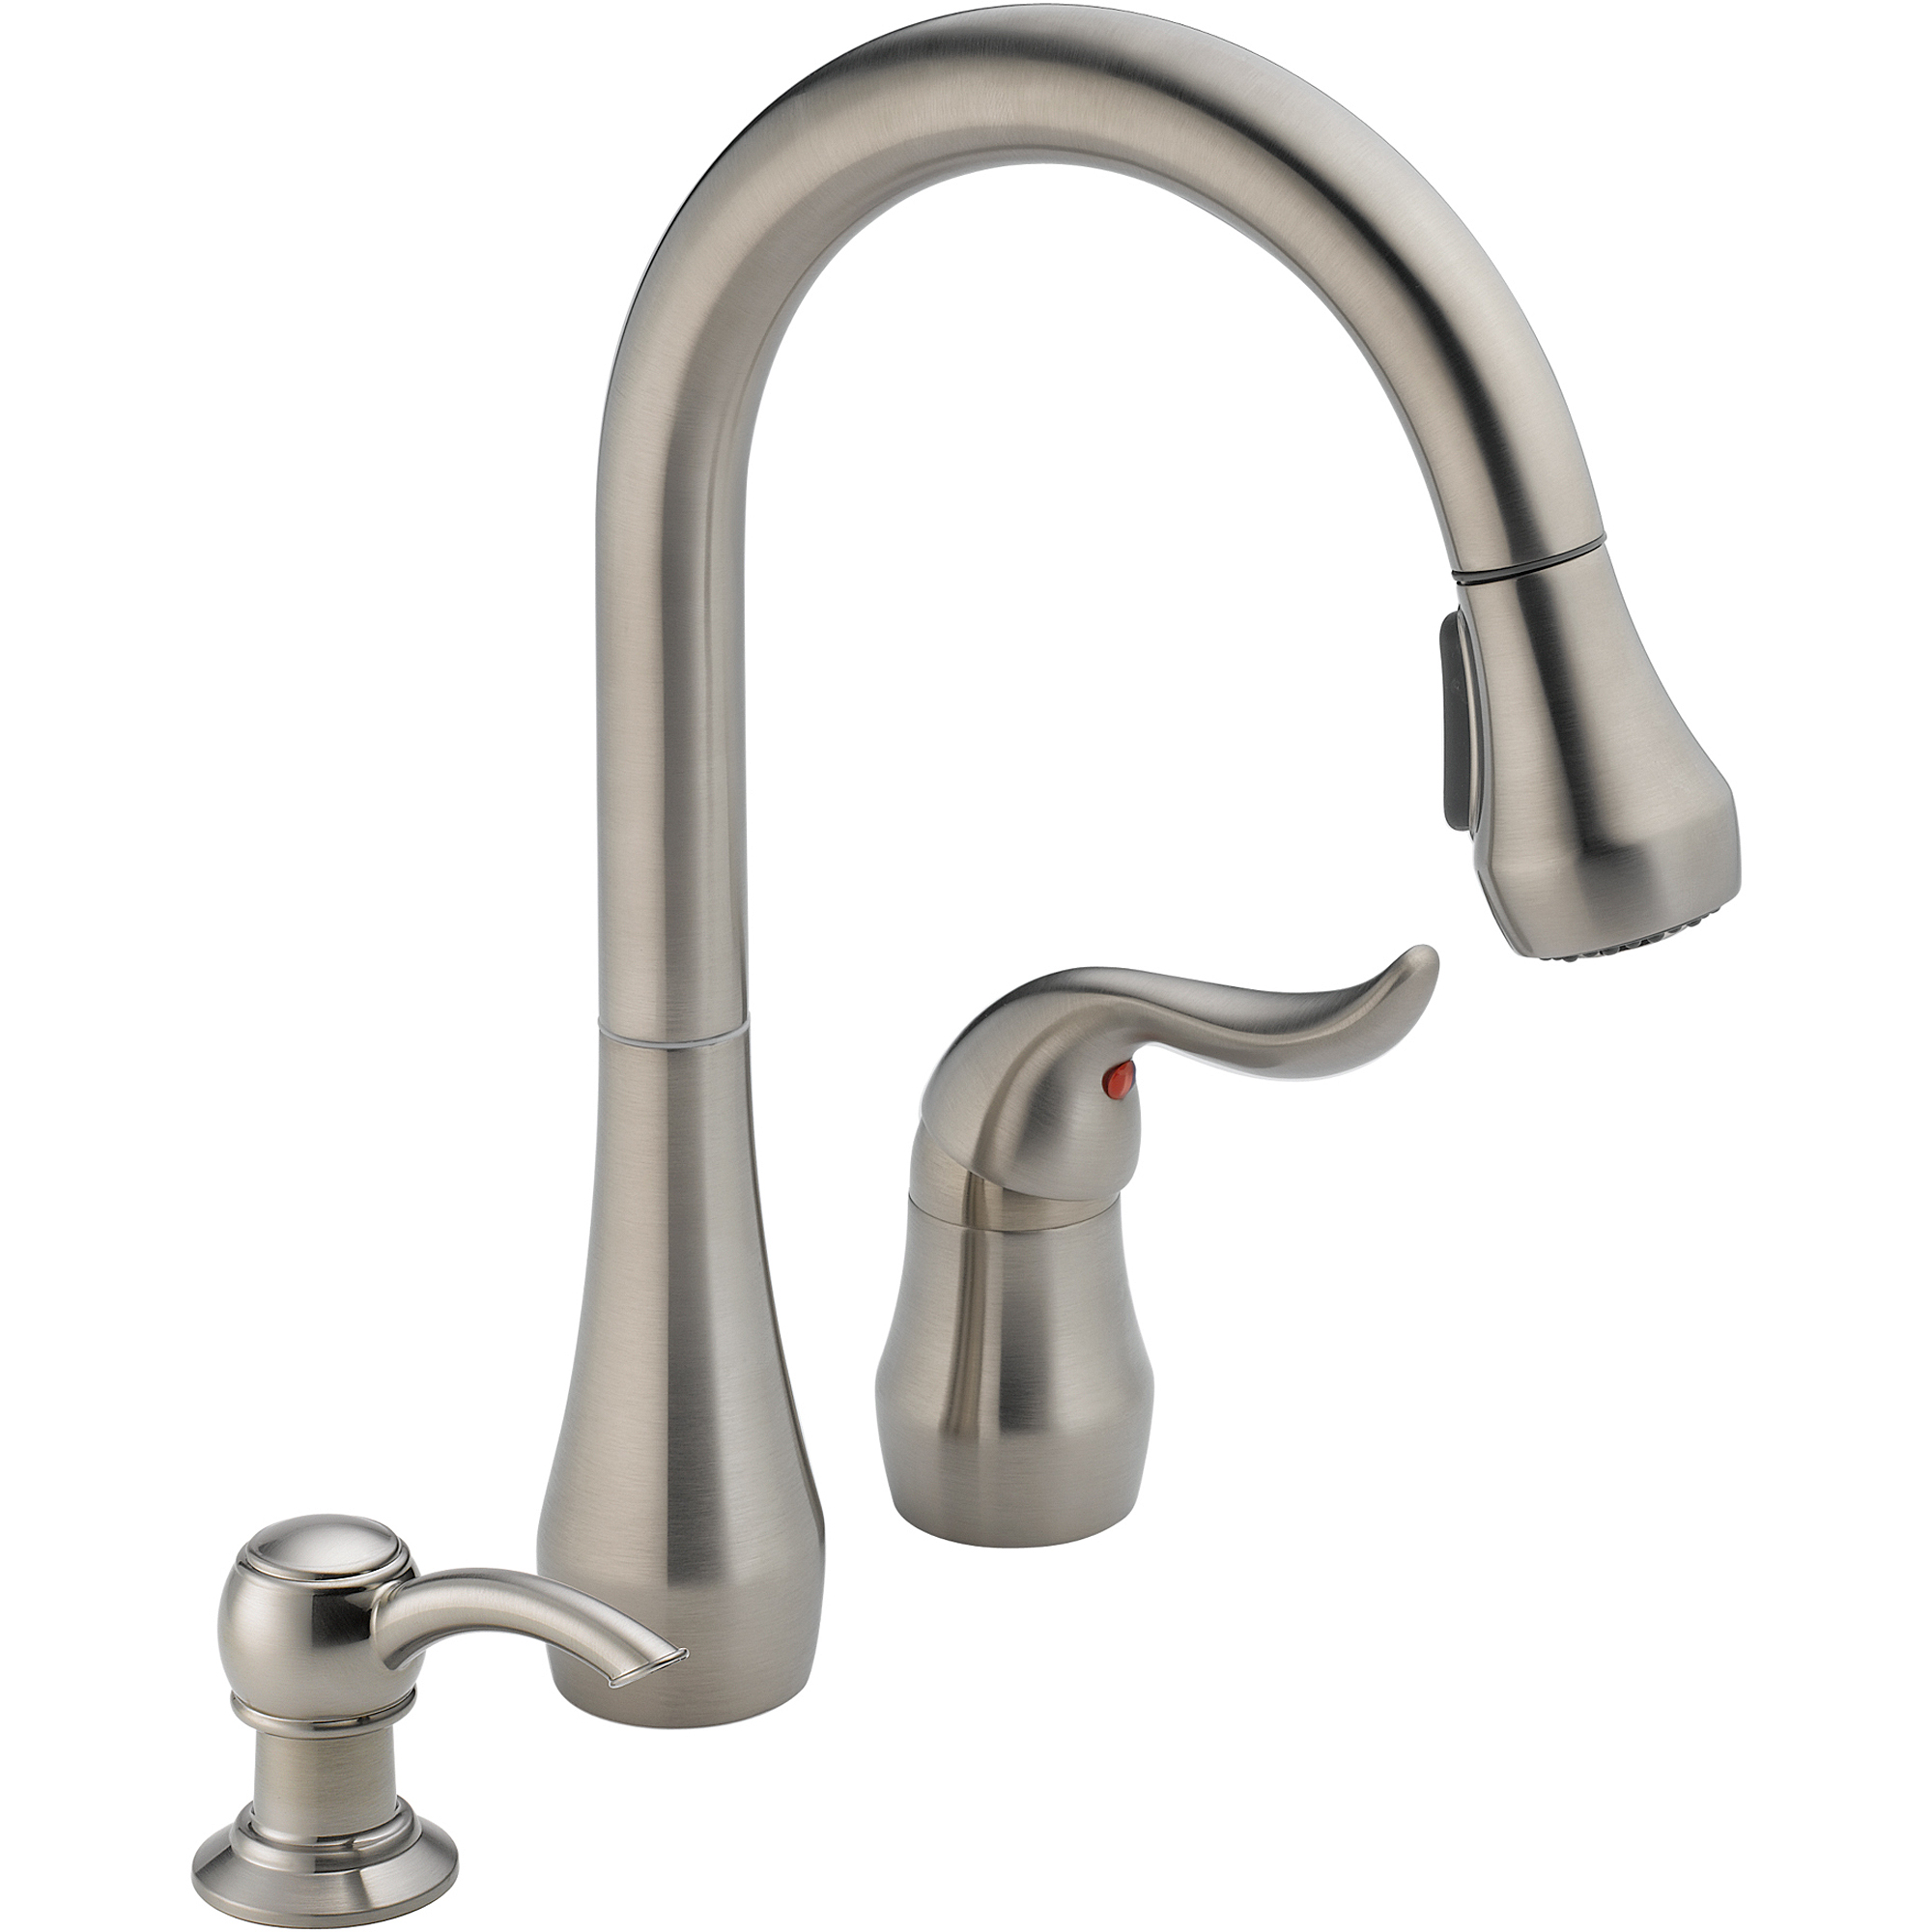 Peerless Single Handle Kitchen Faucet with Pull down Sprayer and